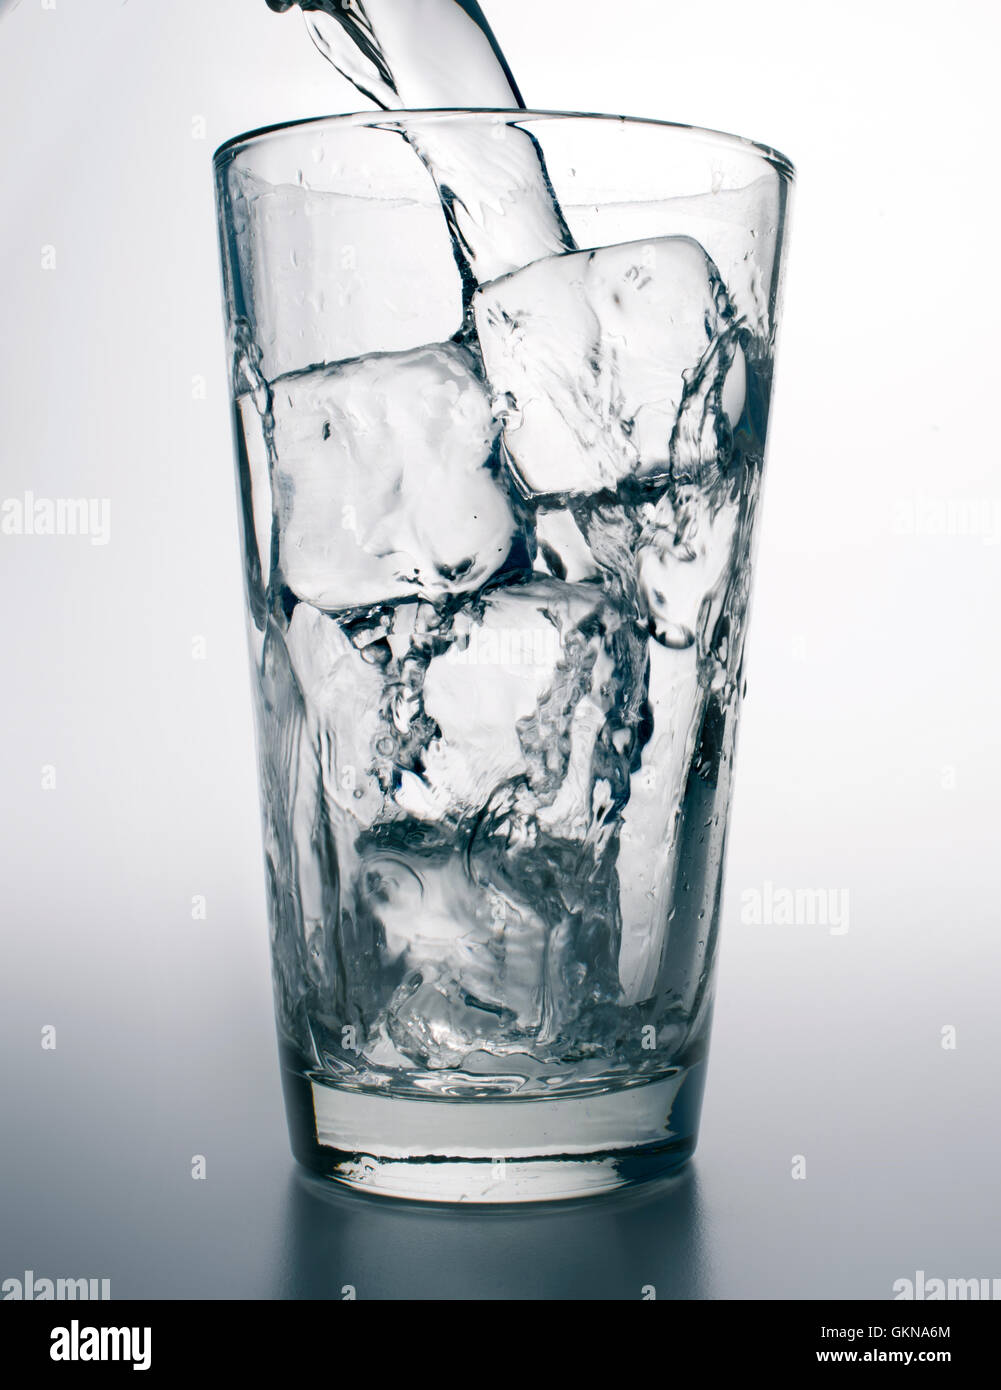 ice water - Stock Image